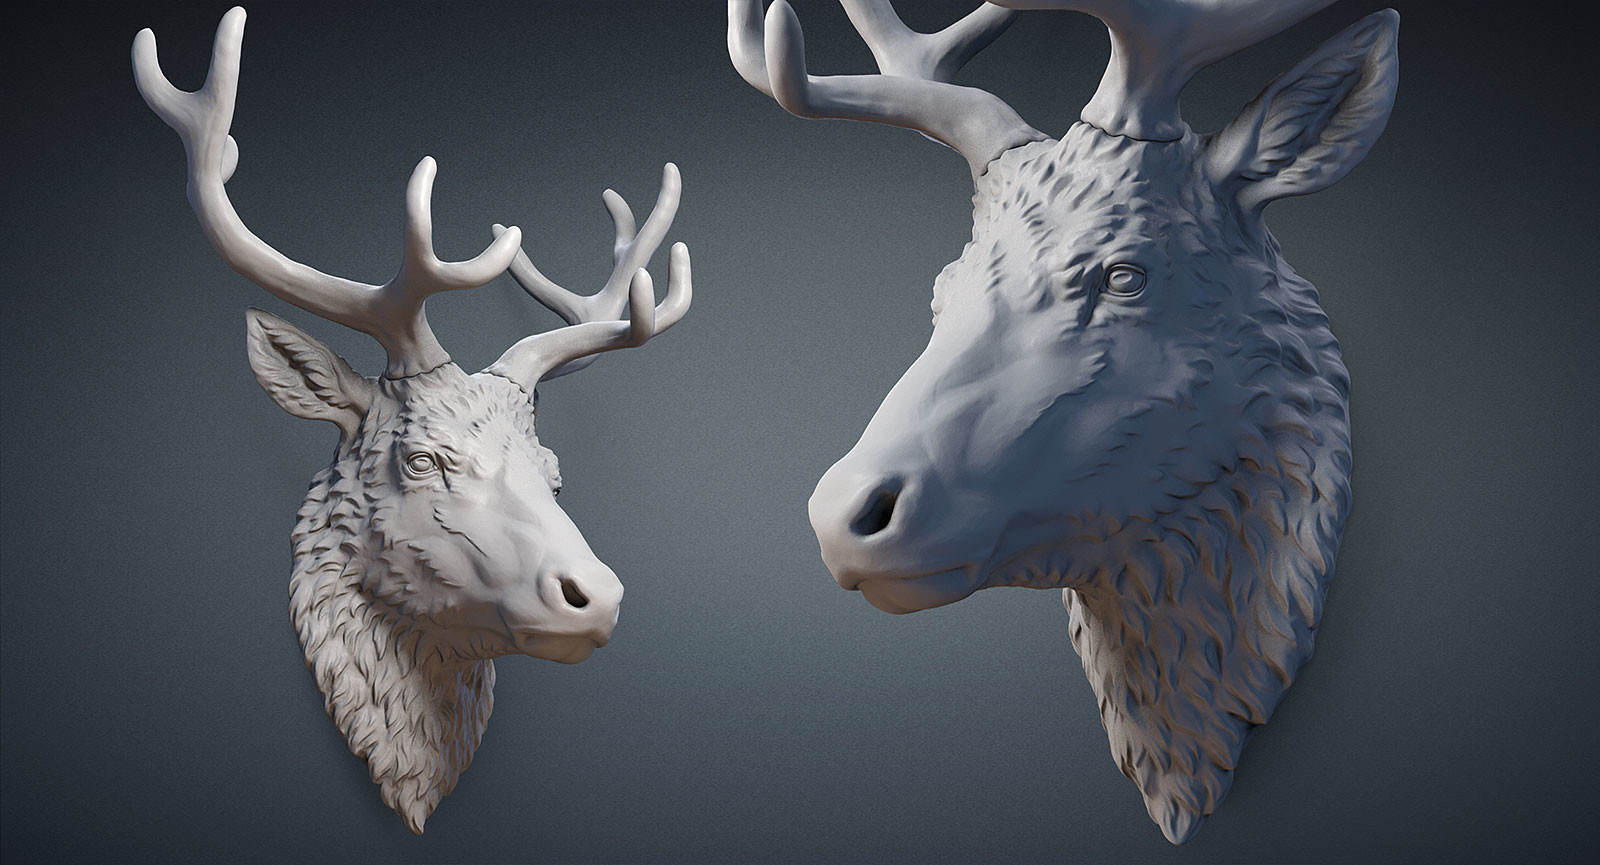 How To Decorate Your Home For Christmas Nikolay Vorobyov Reindeer Head 3d Print Digital Sculpture